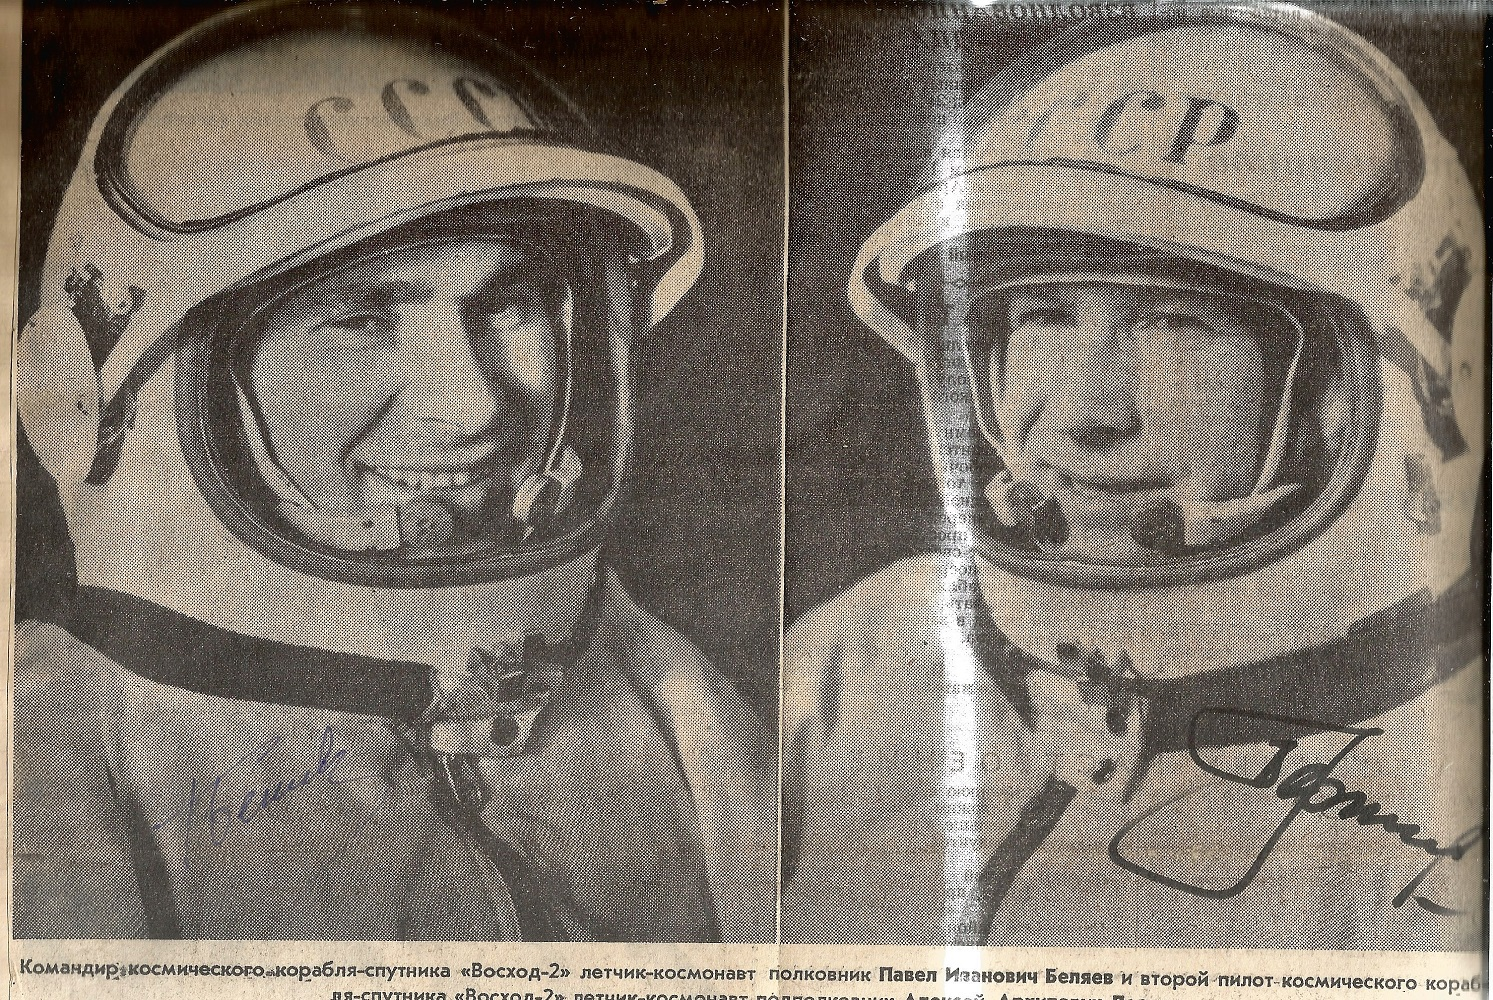 1950/60s Russian Cosmonauts multiple signed hard backed scrapbook compiled by a worker at Baikonur - Image 21 of 22